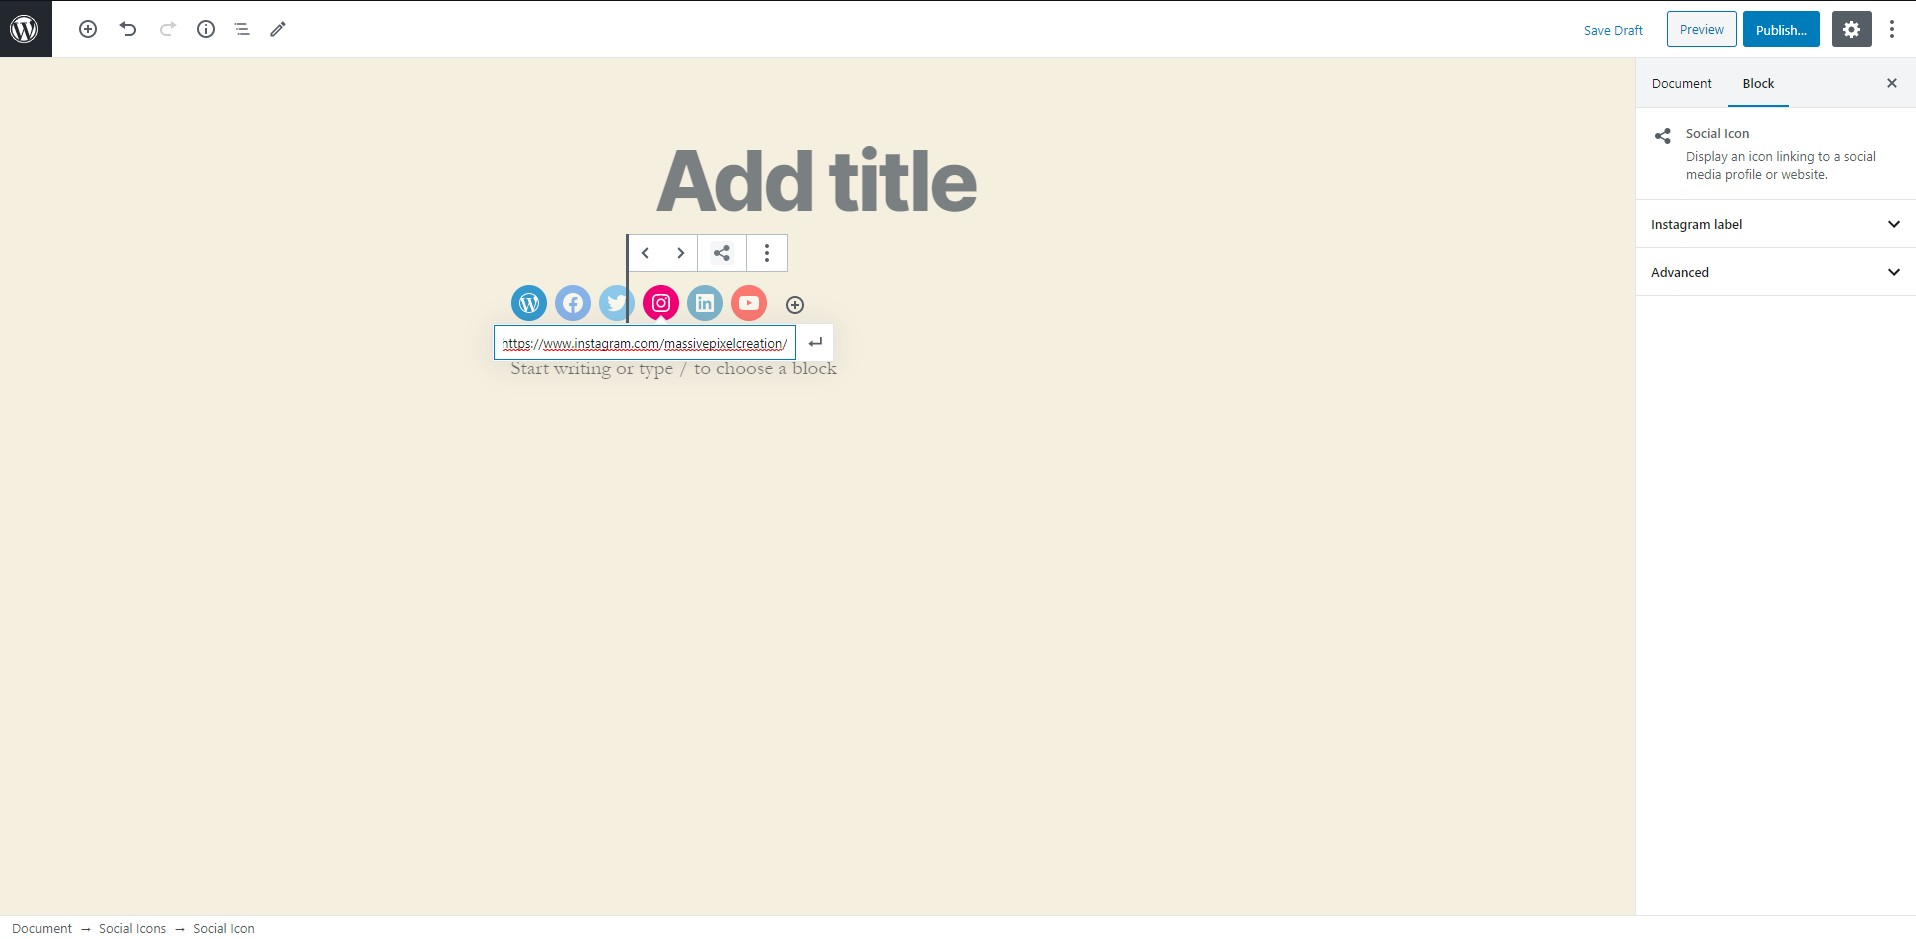 After adding the entire block to your post, you'll be able to add specific icons and link them to your social media accounts in a single click.